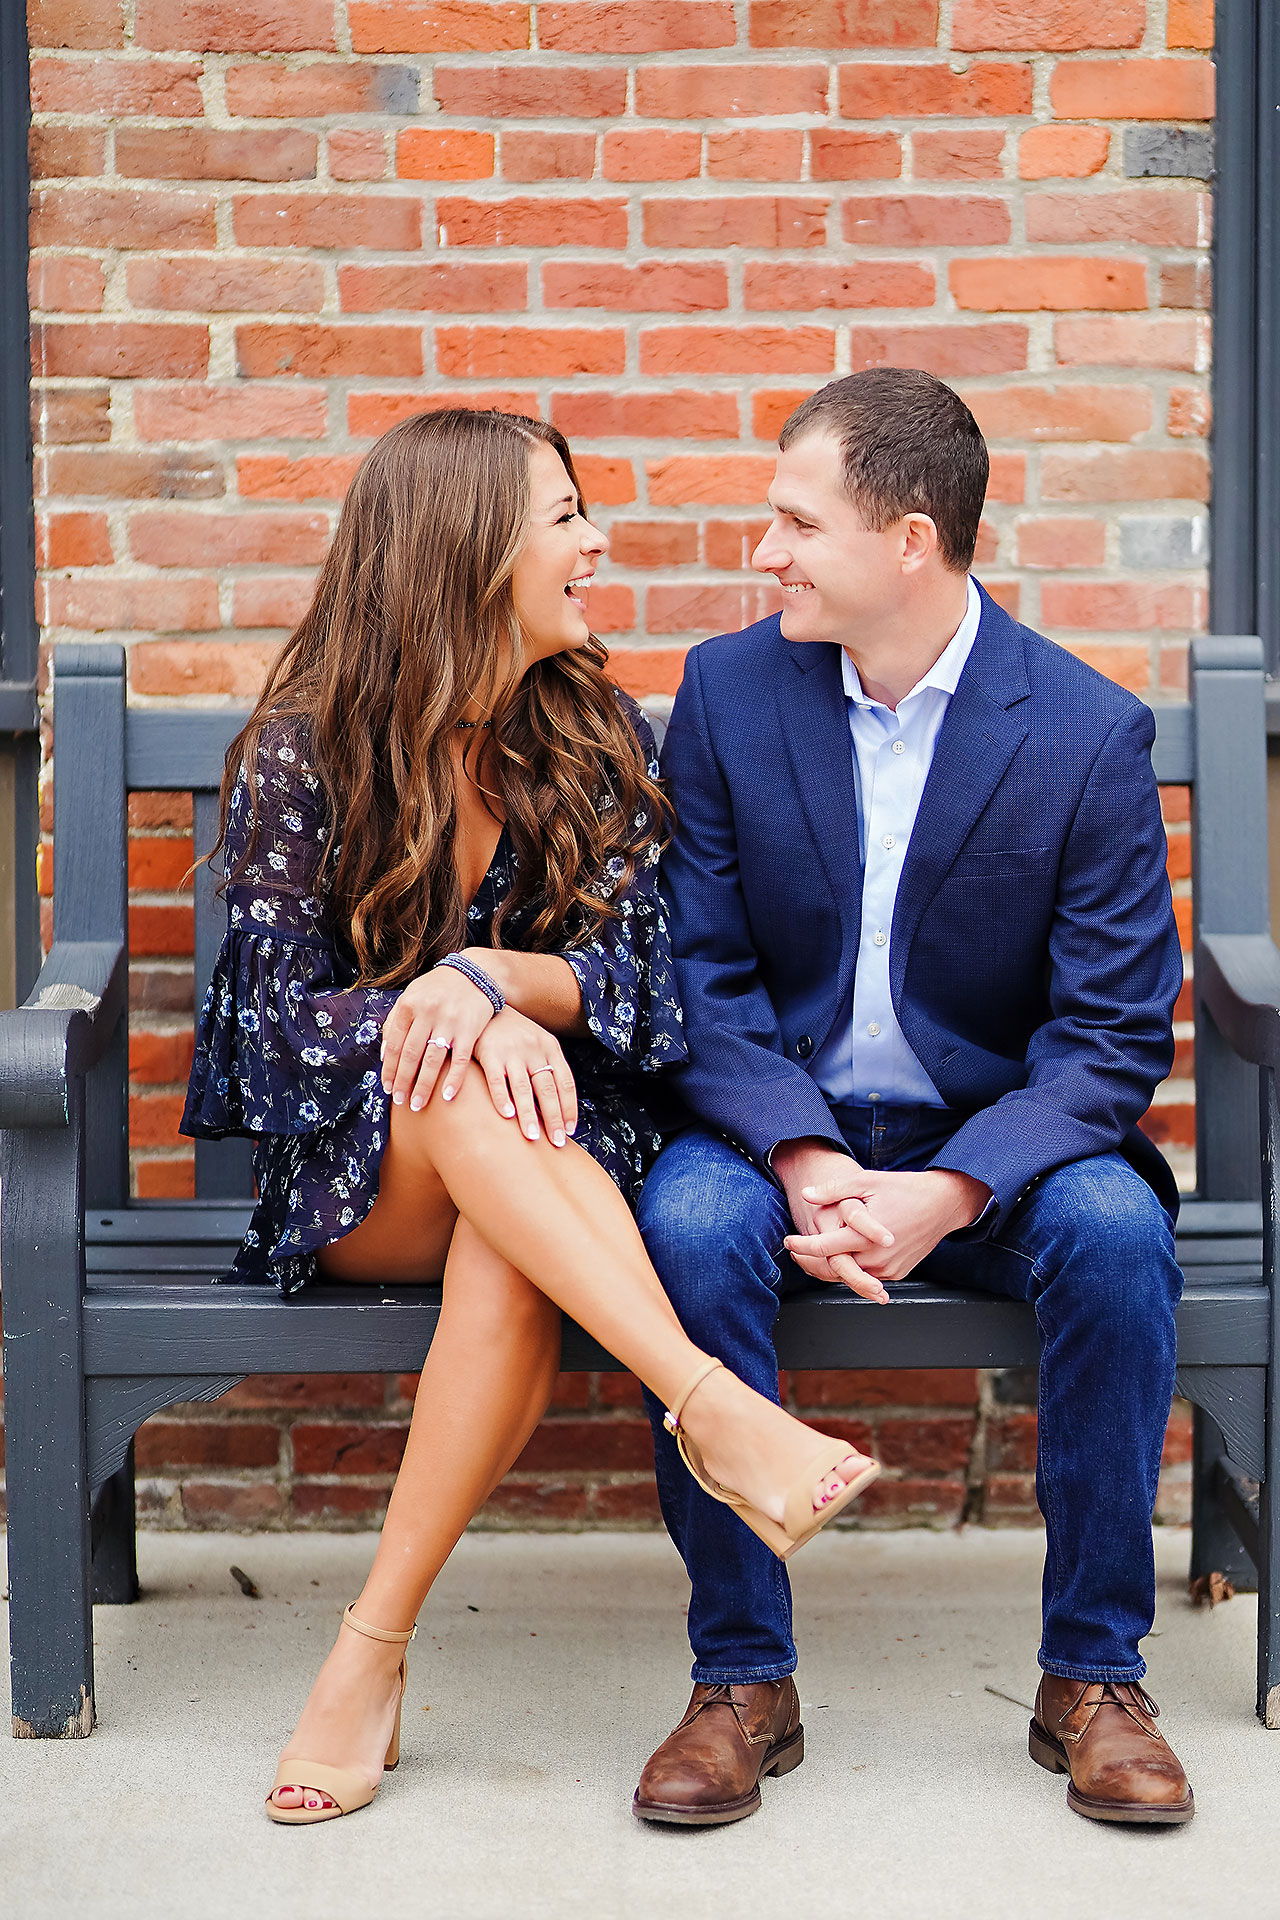 Sarah Andrew Holcomb Gardens Zionsville Engagement Session 069